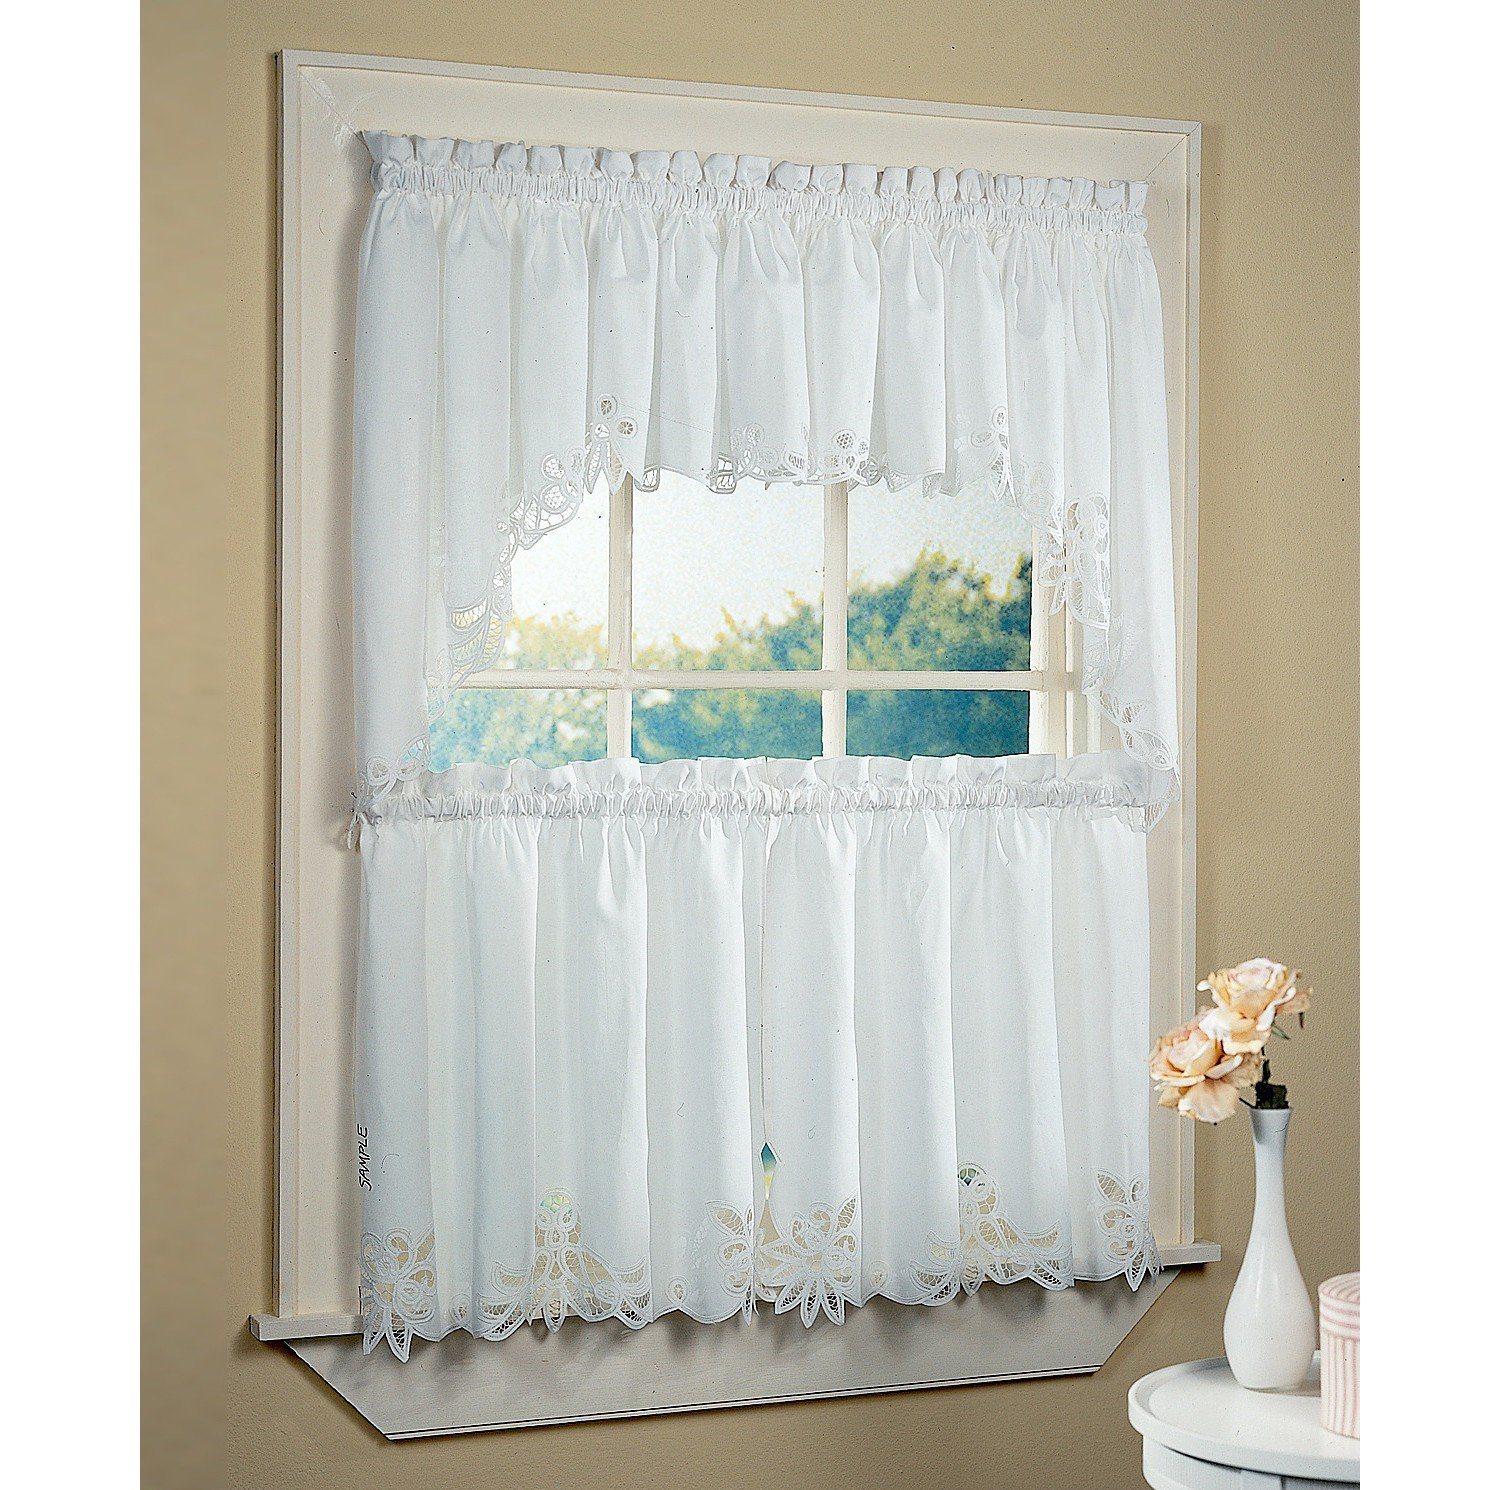 Half window curtains ideas homesfeed Curtain ideas for short windows